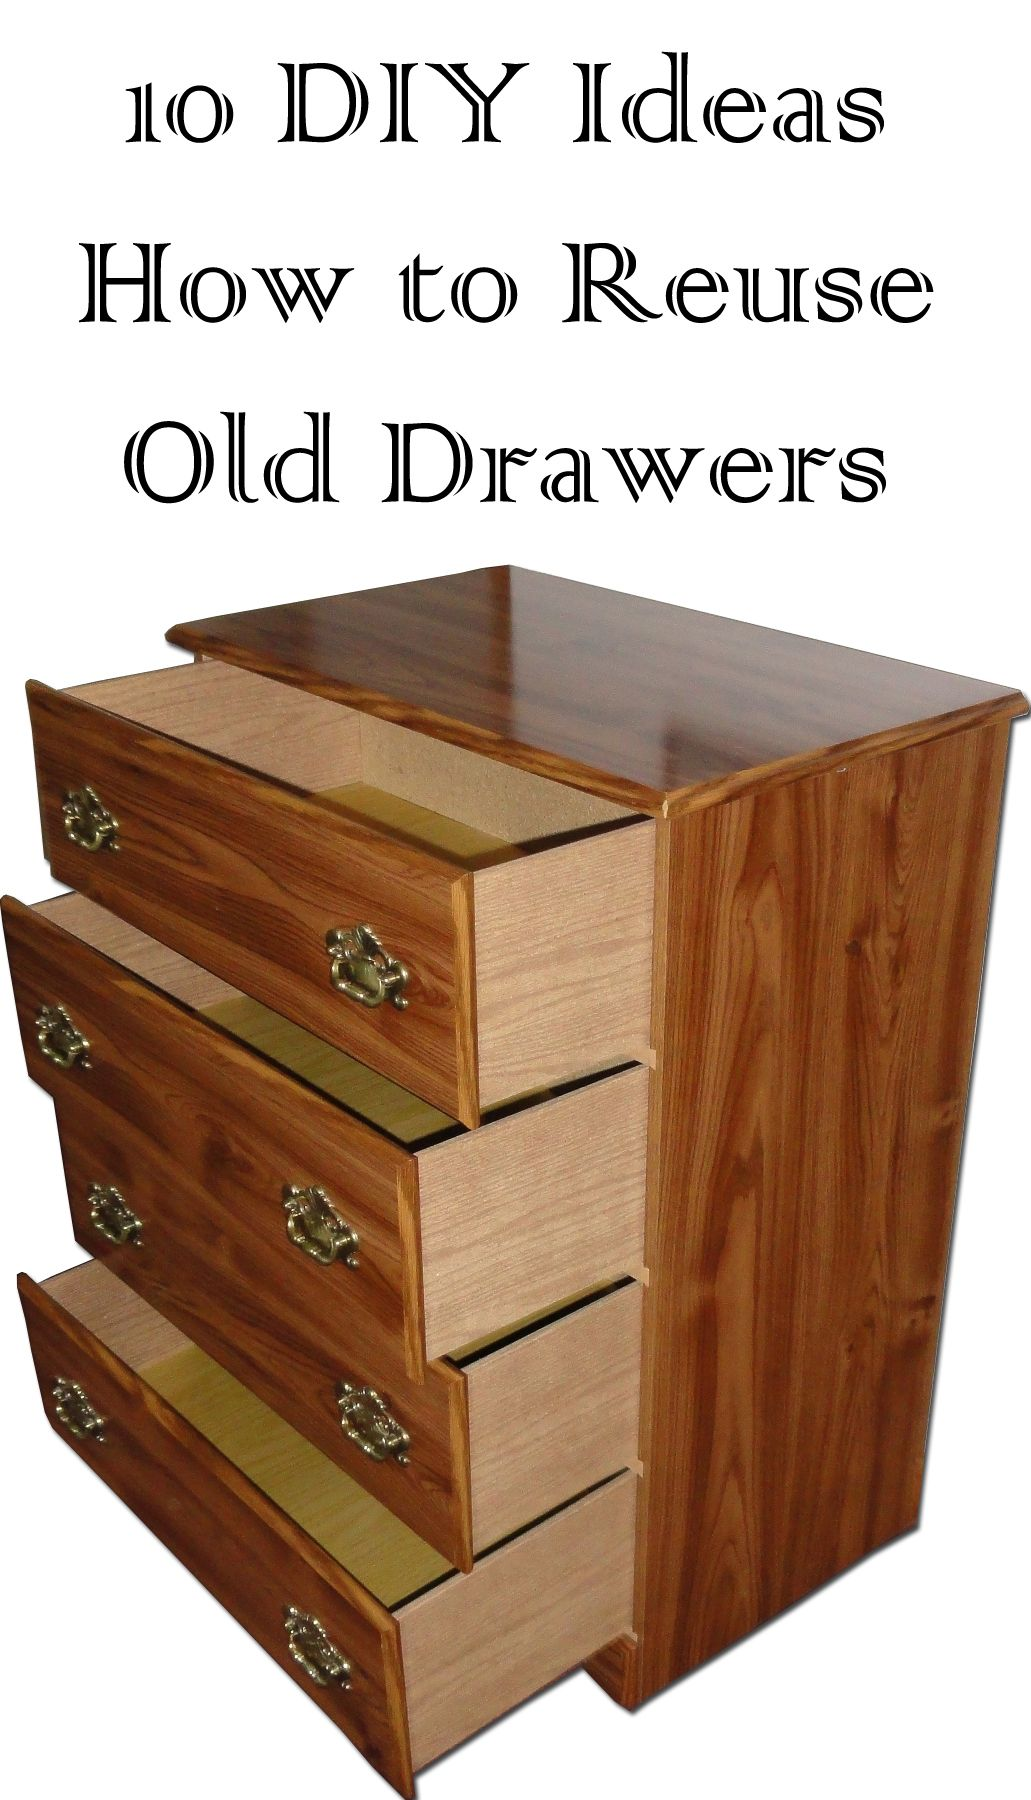 10 DIY Ideas How to Reuse Old Drawers Old drawers, Diy